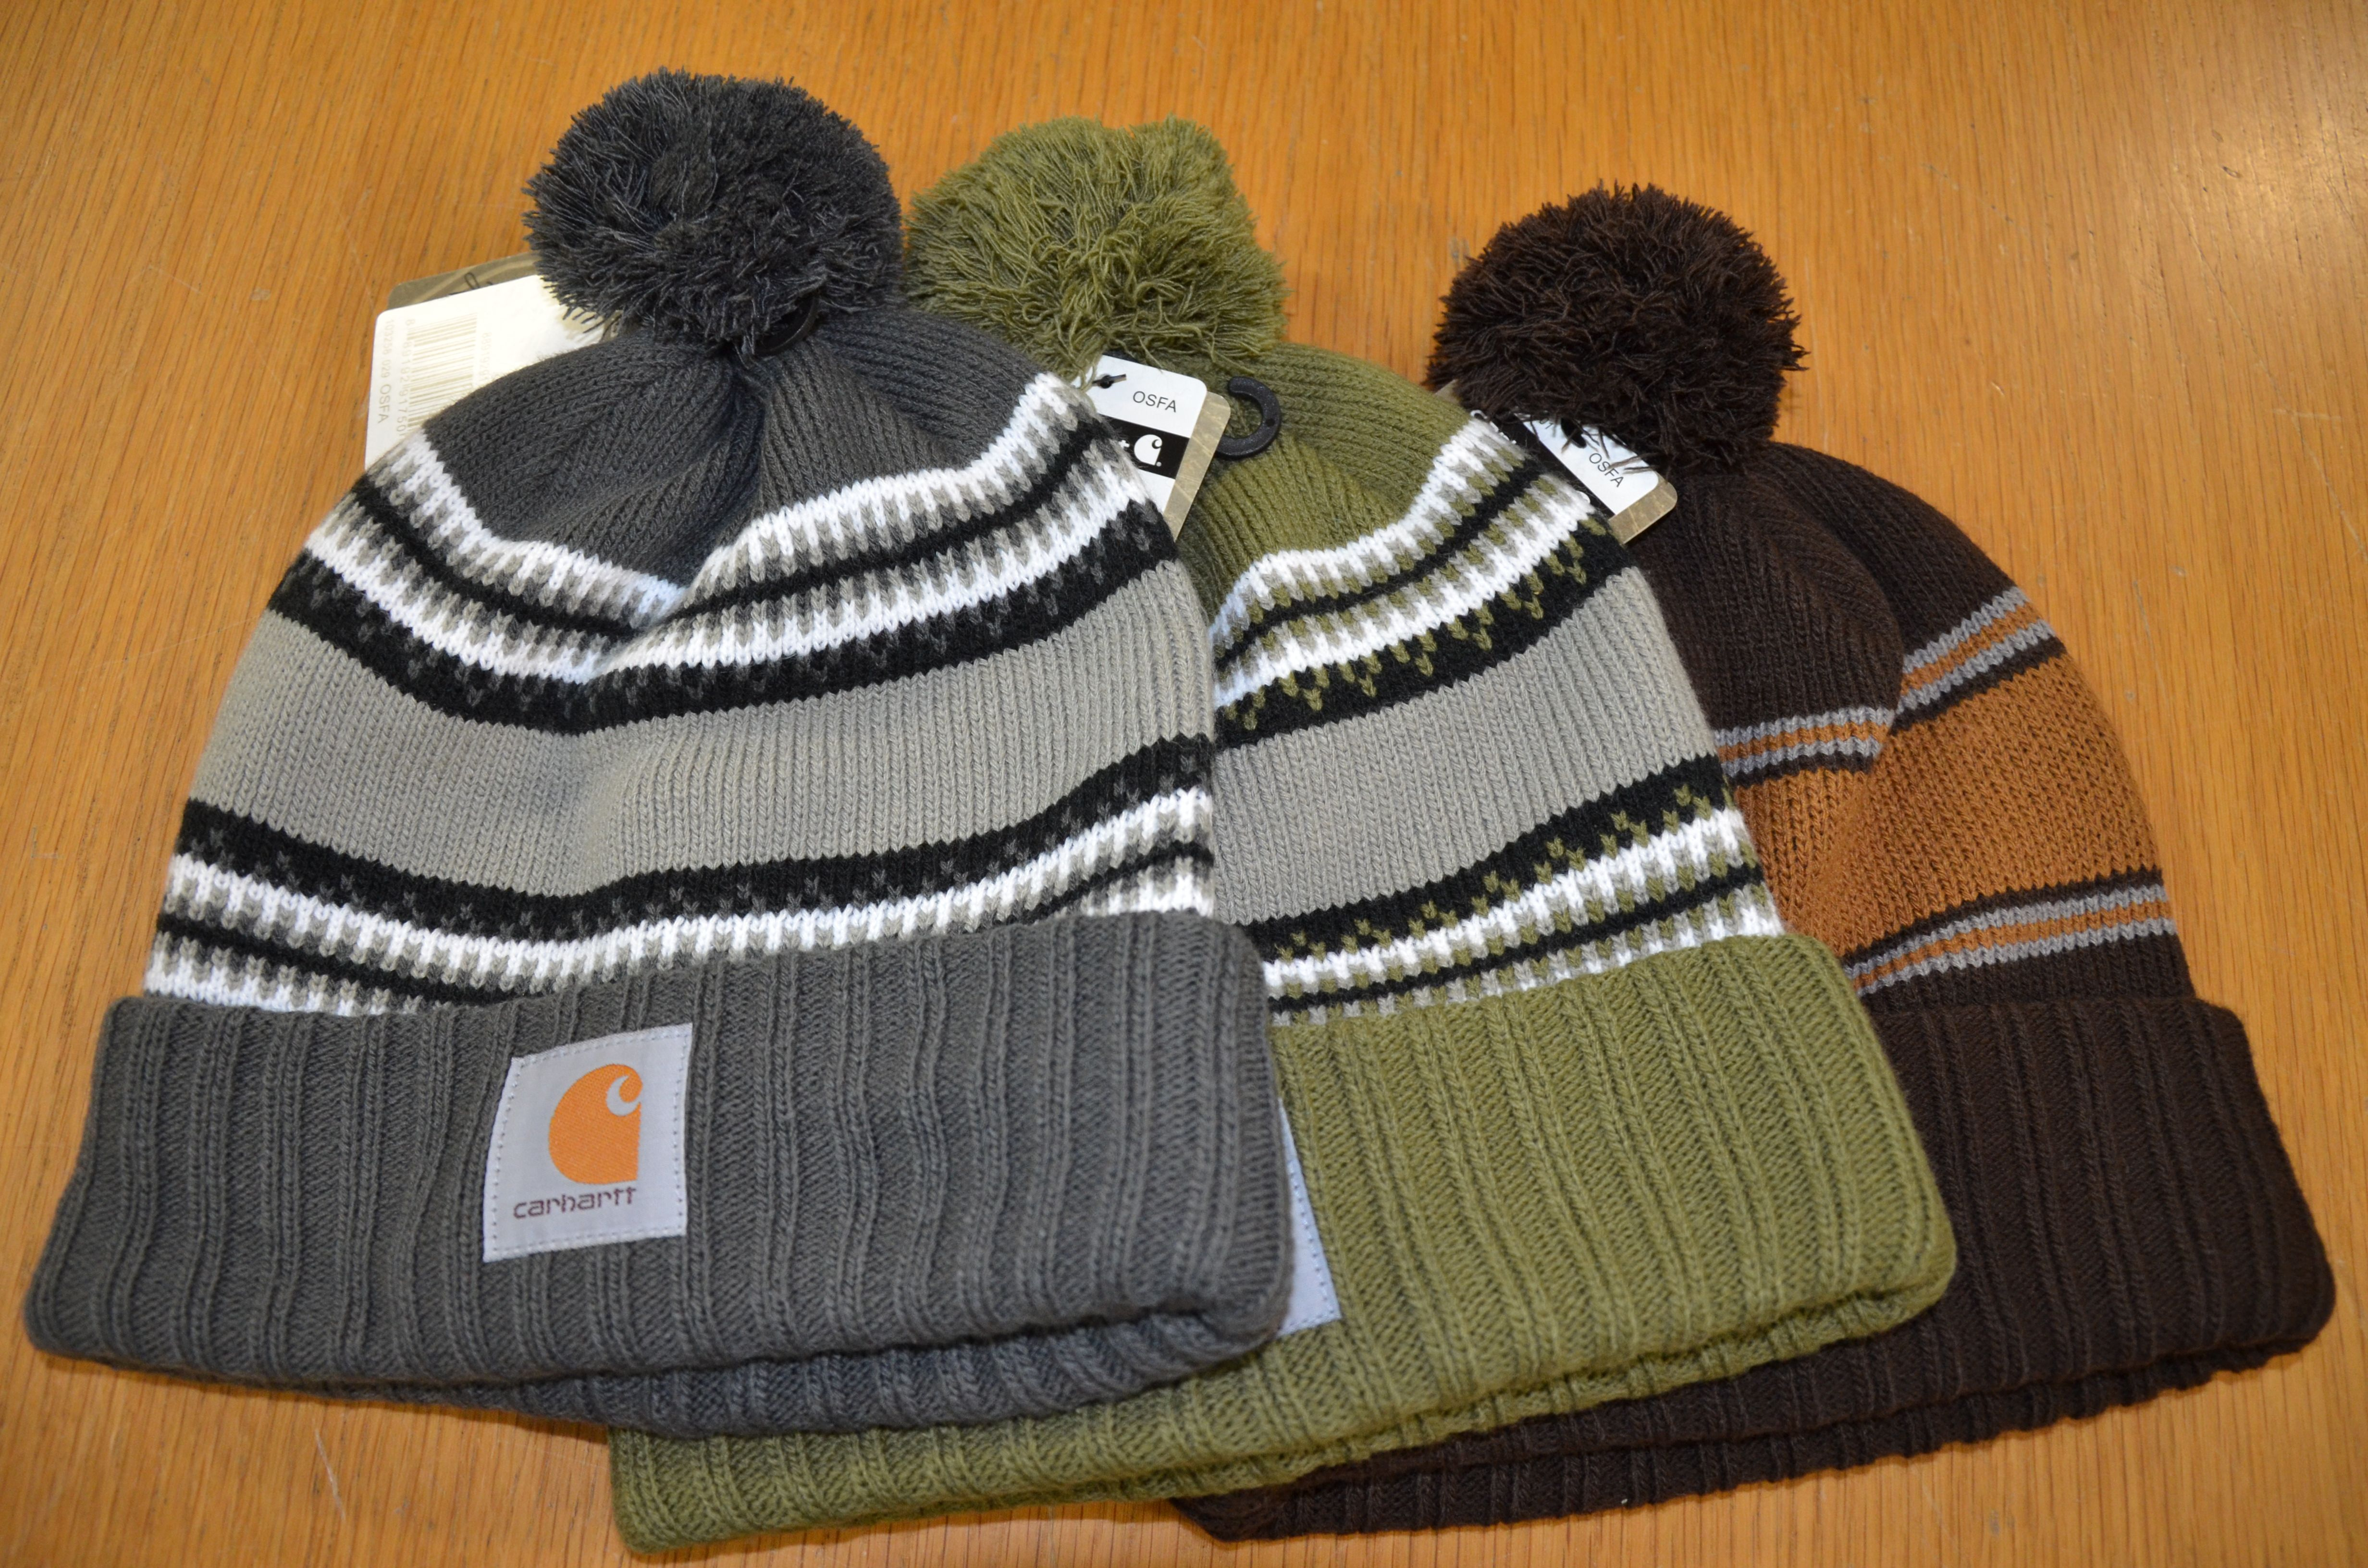 Carhartt Rexburg Hats in three colourways. Rib Knit Hat with Carhartt  label sewn on 88cbde0fc77